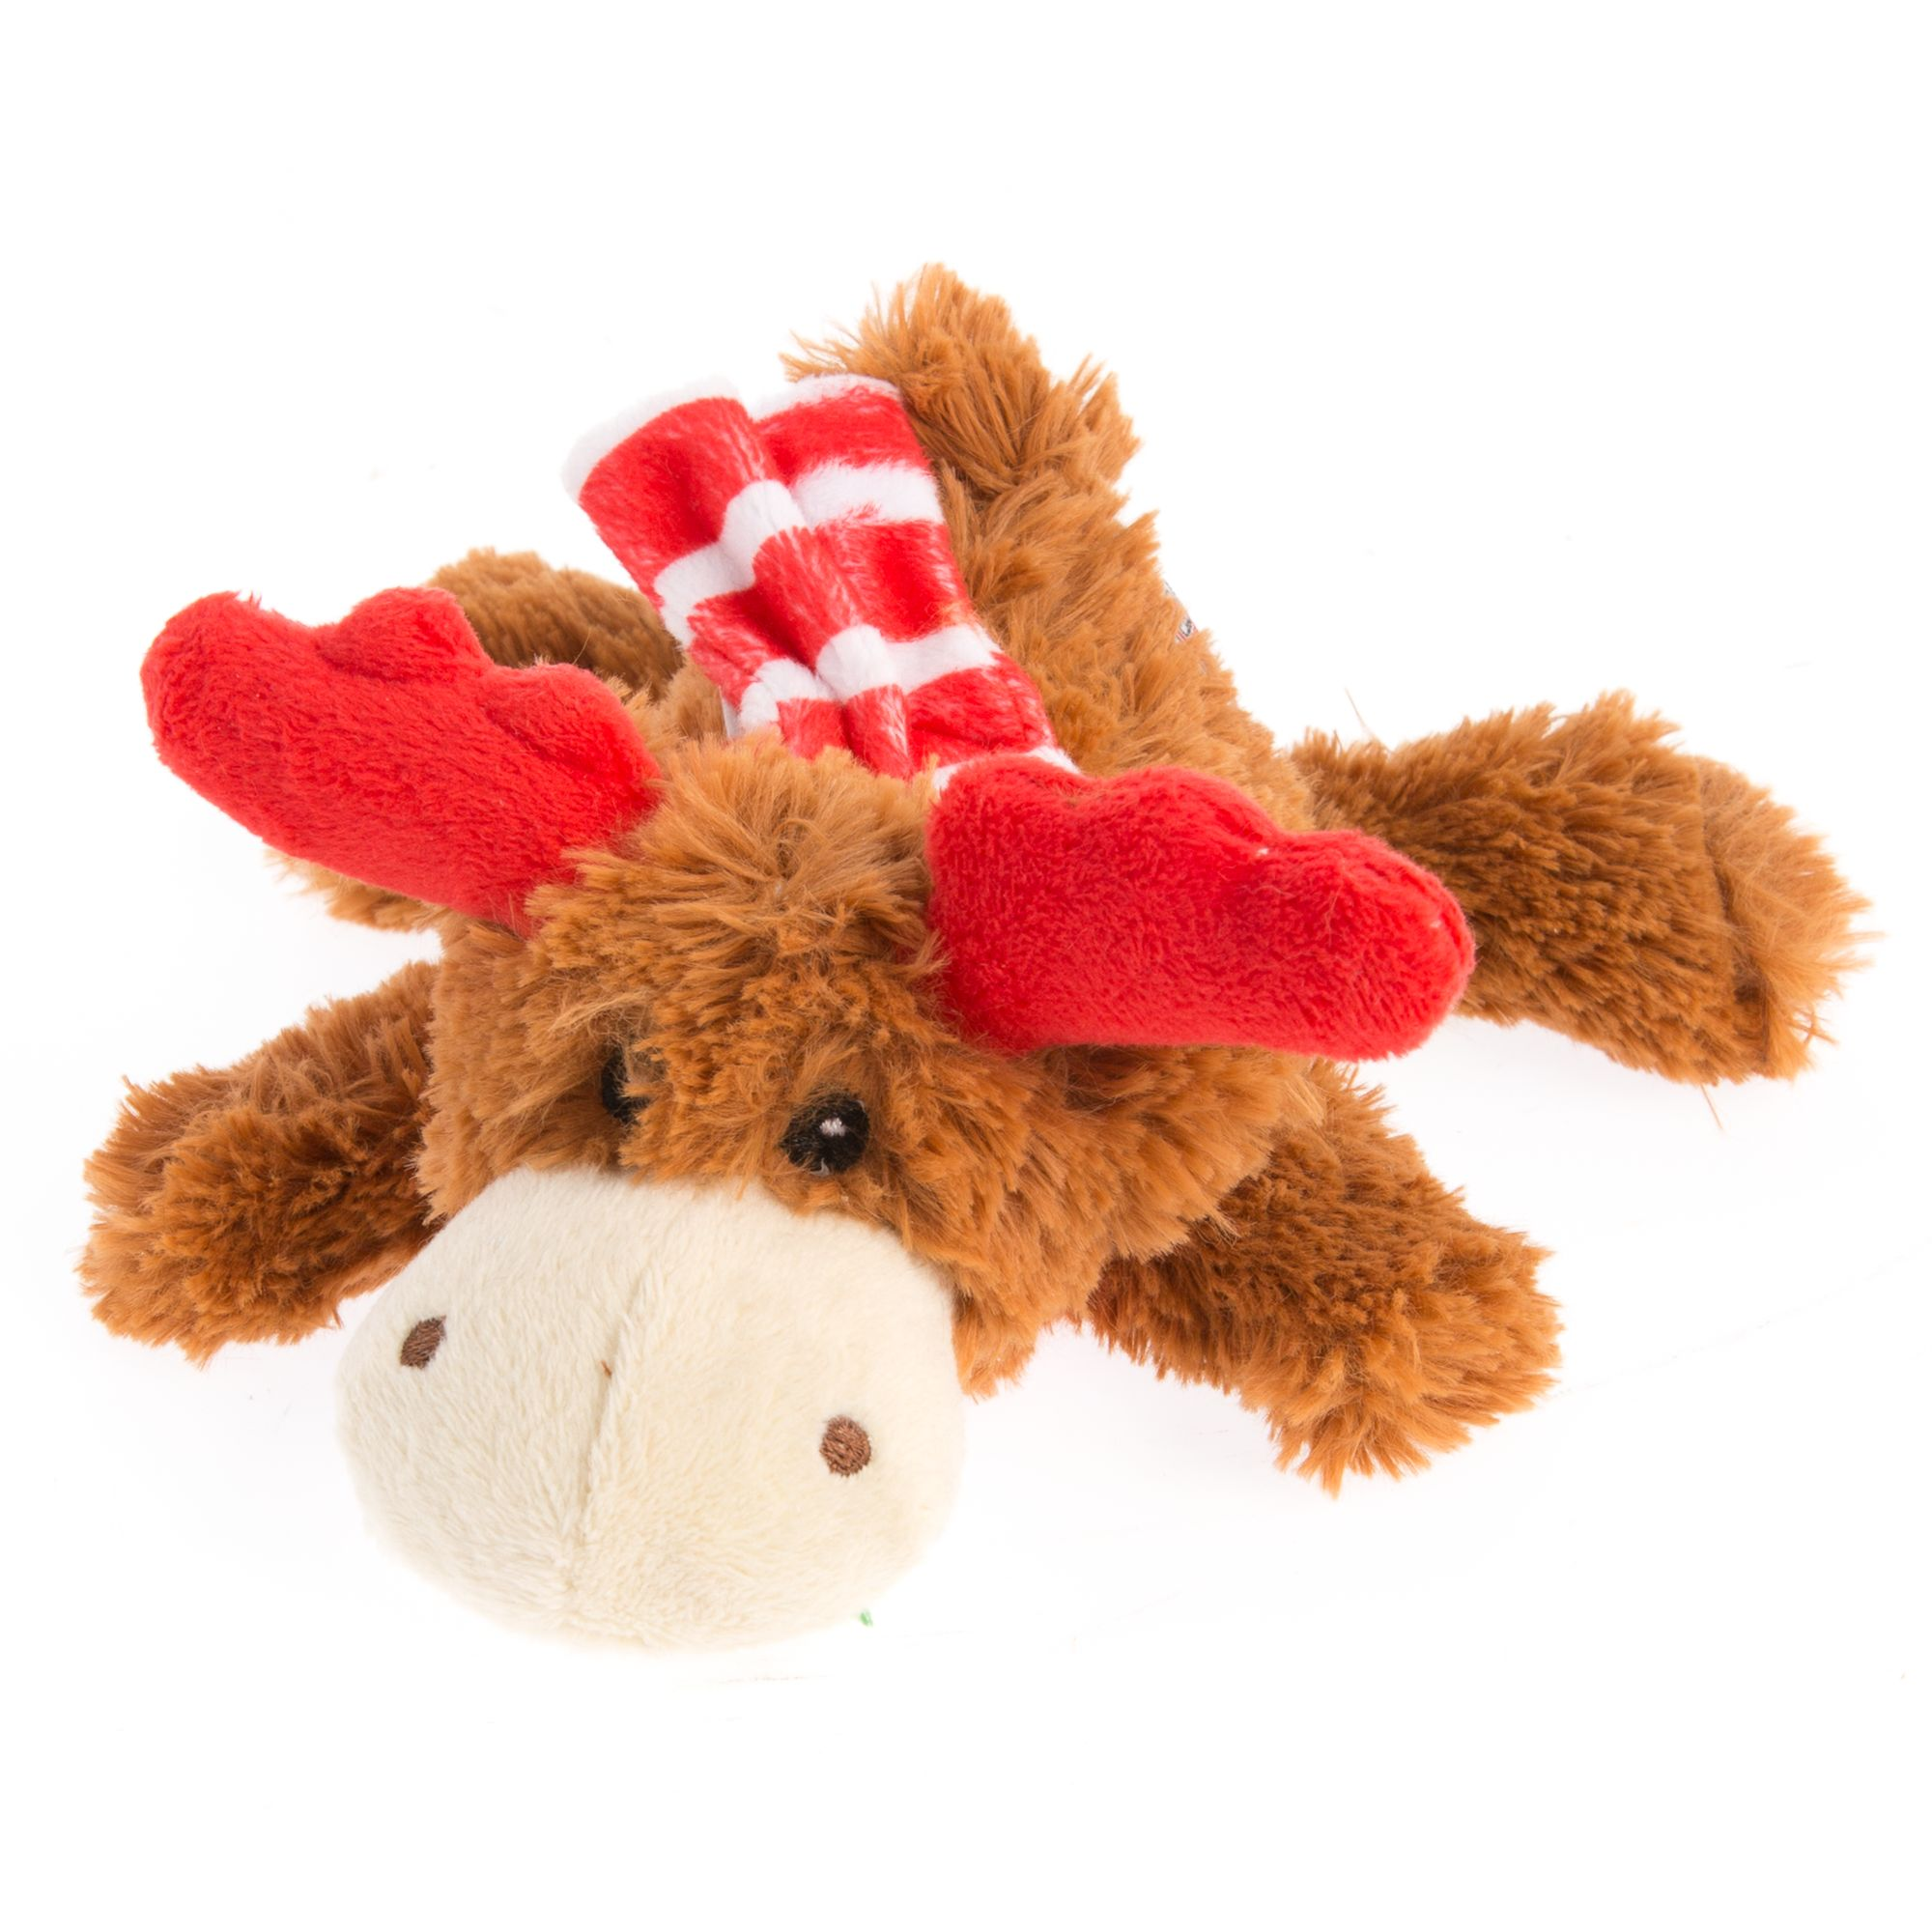 Kong® Holiday Cozie Reindeer Dog Toy 5258013